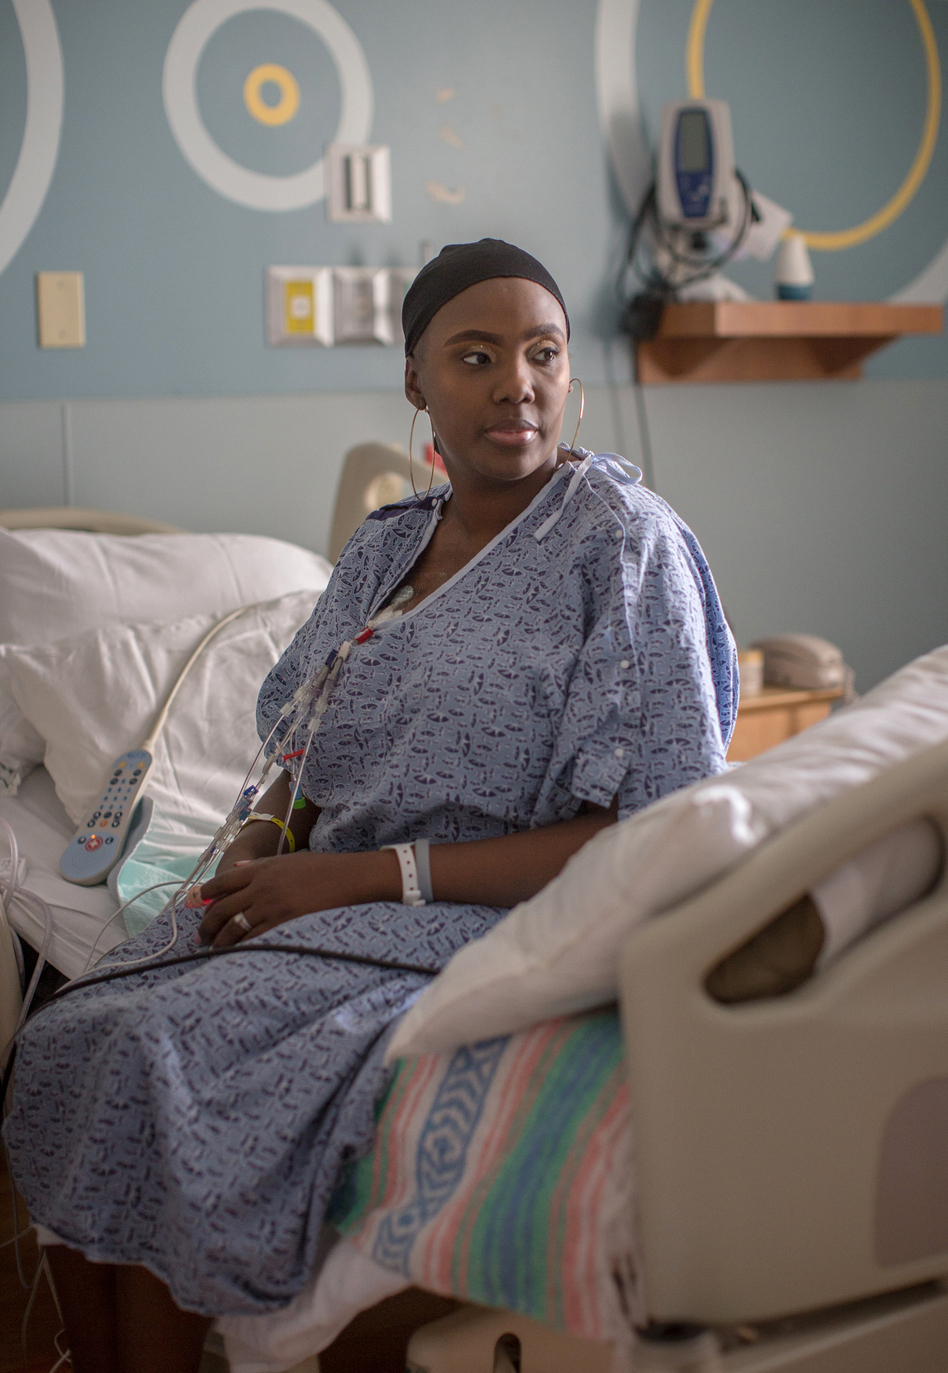 Gray was diagnosed with sickle cell disease when she was an infant. She was considering a bone marrow transplant when she heard about the CRISPR study and jumped at the chance to volunteer. (Meredith Rizzo/NPR)